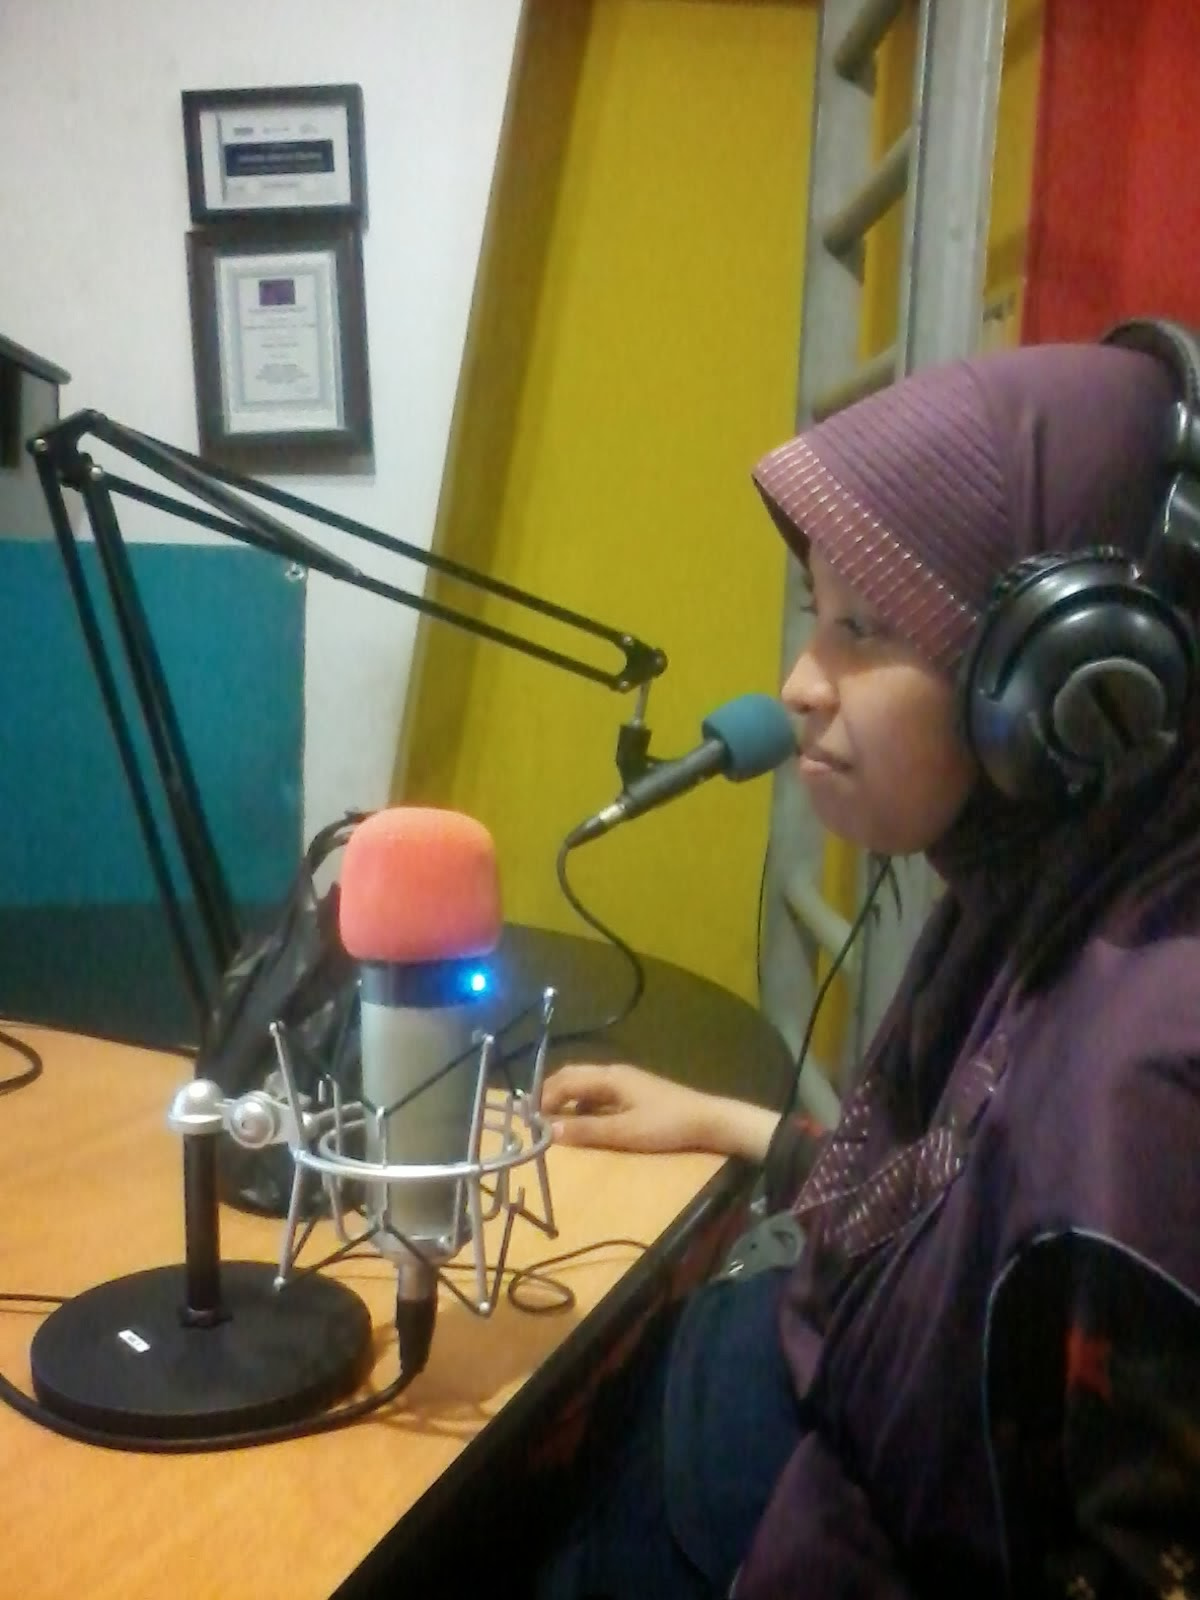 Sounding Interfaith Trajectory (Care), Jakarta Islamic Centre (JIC) Radio (Live)